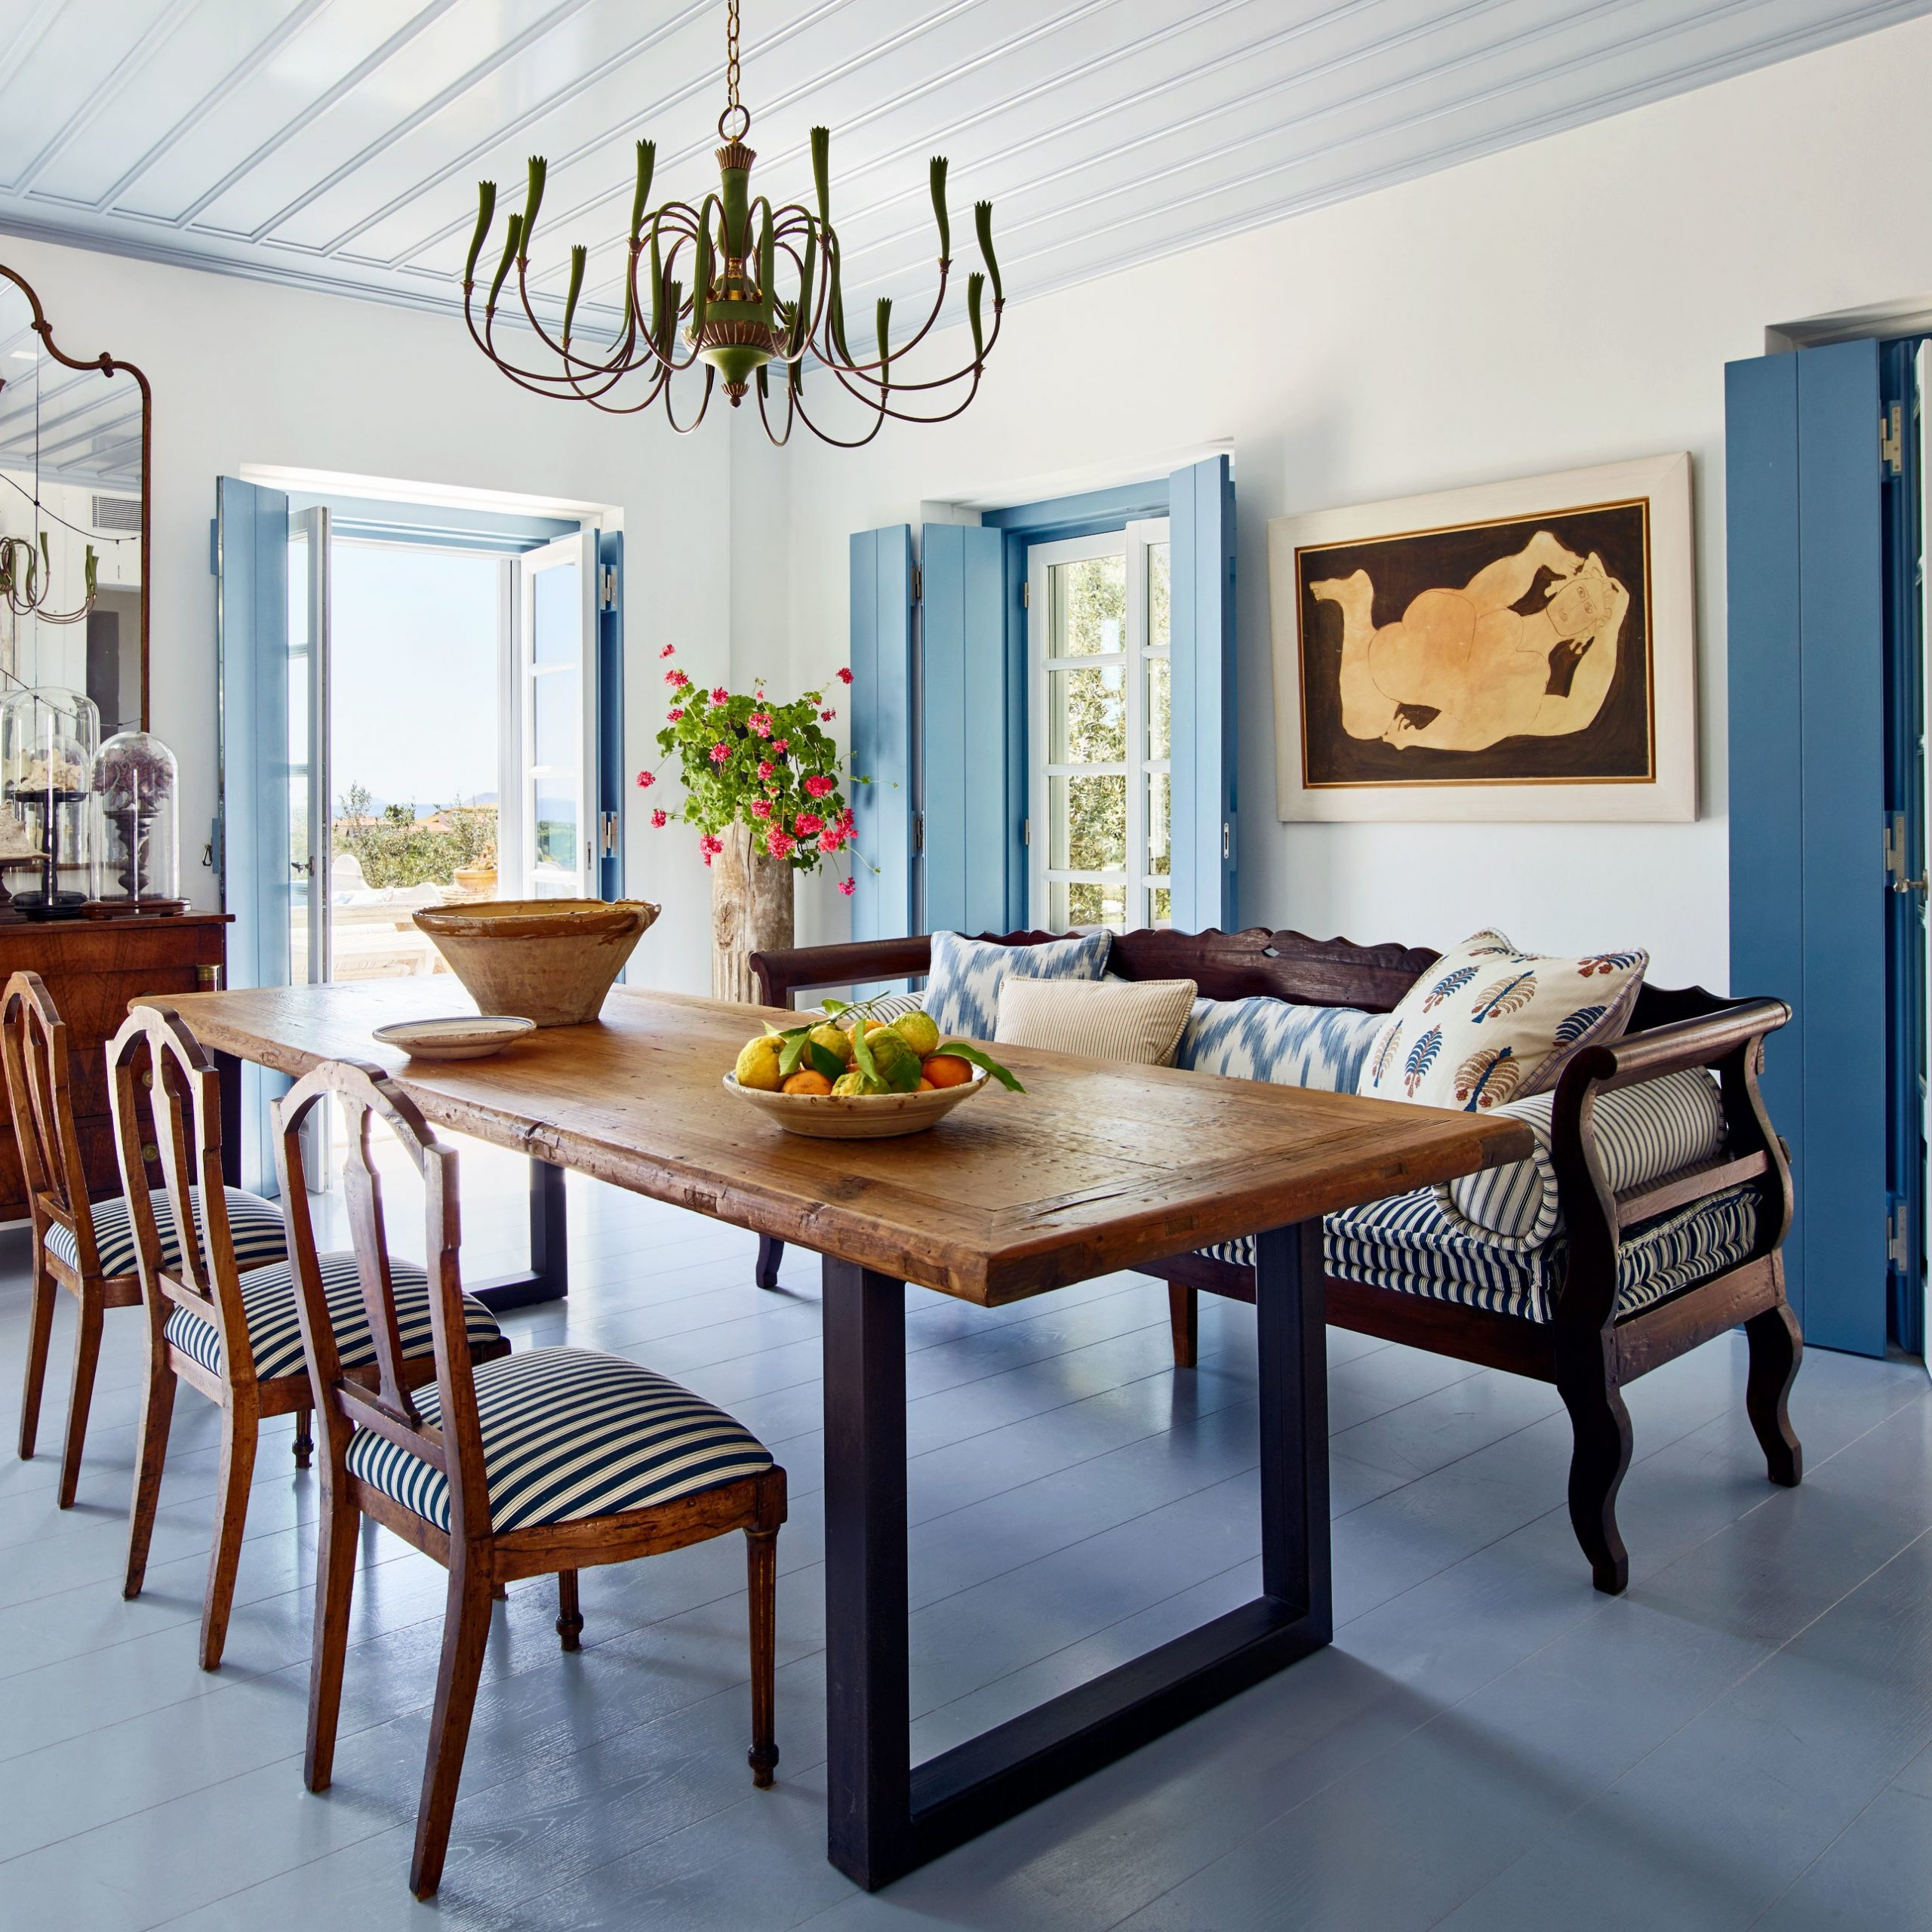 Tips To Mix And Match Dining Room Chairs Successfully Within Fashionable Chrome Contemporary Square Casual Dining Tables (View 13 of 25)